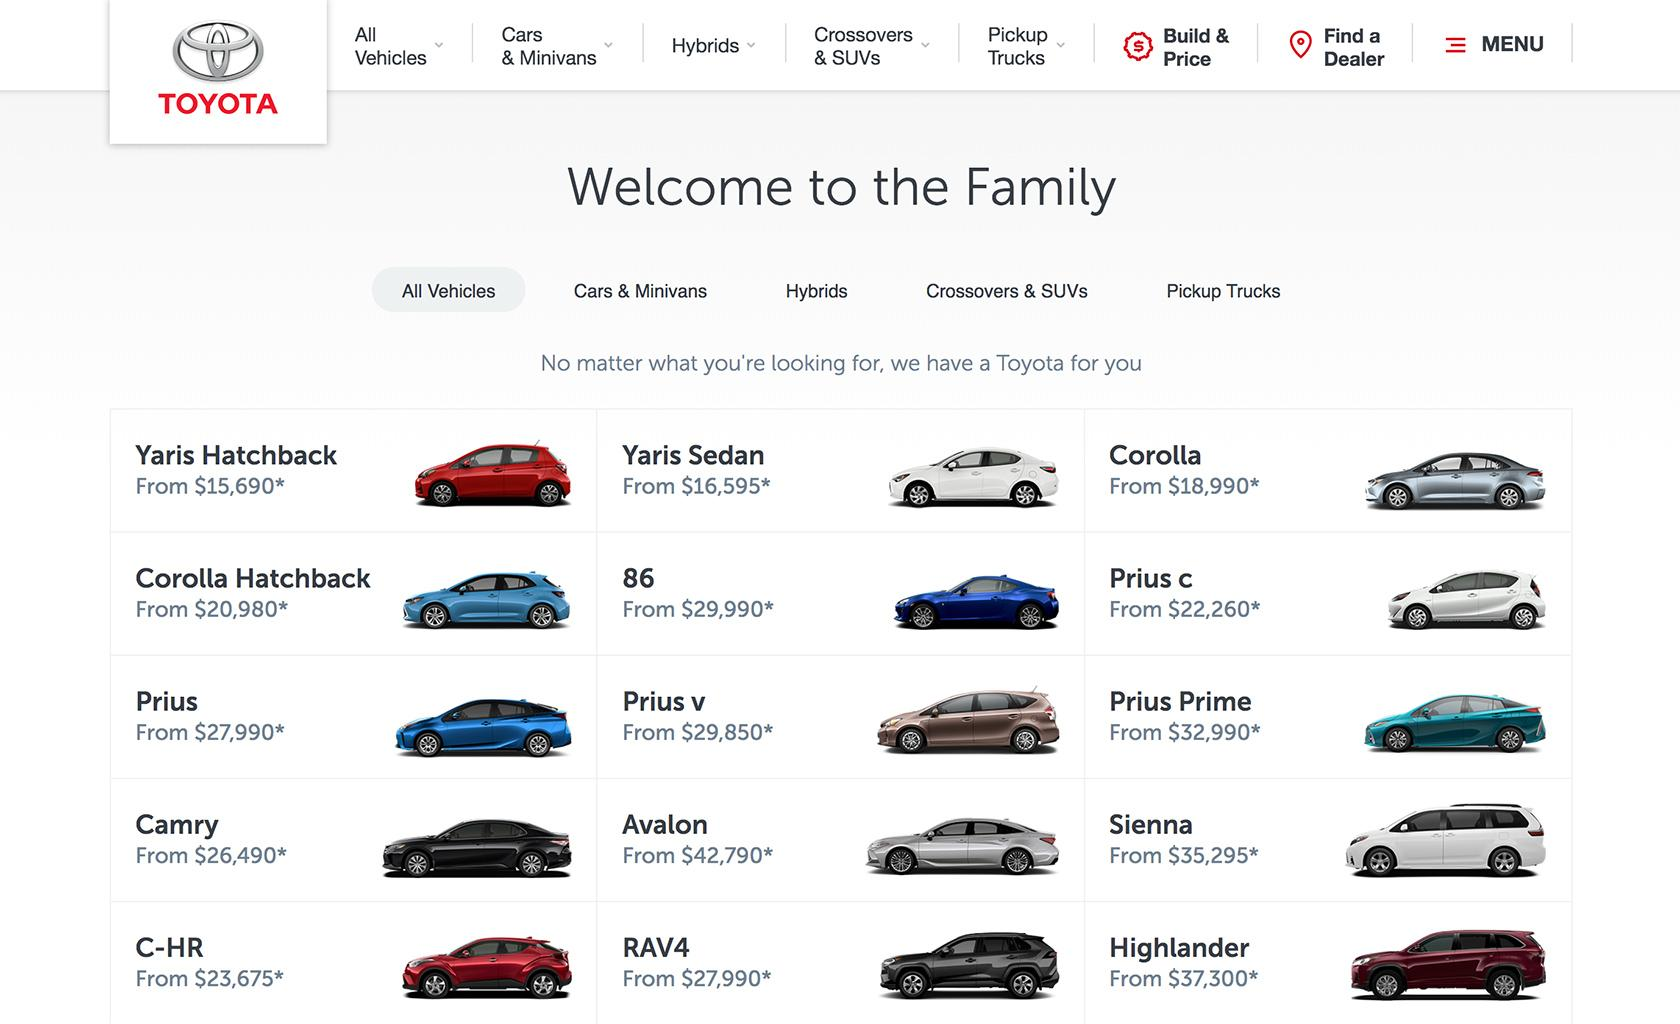 A typical automotive web design layout